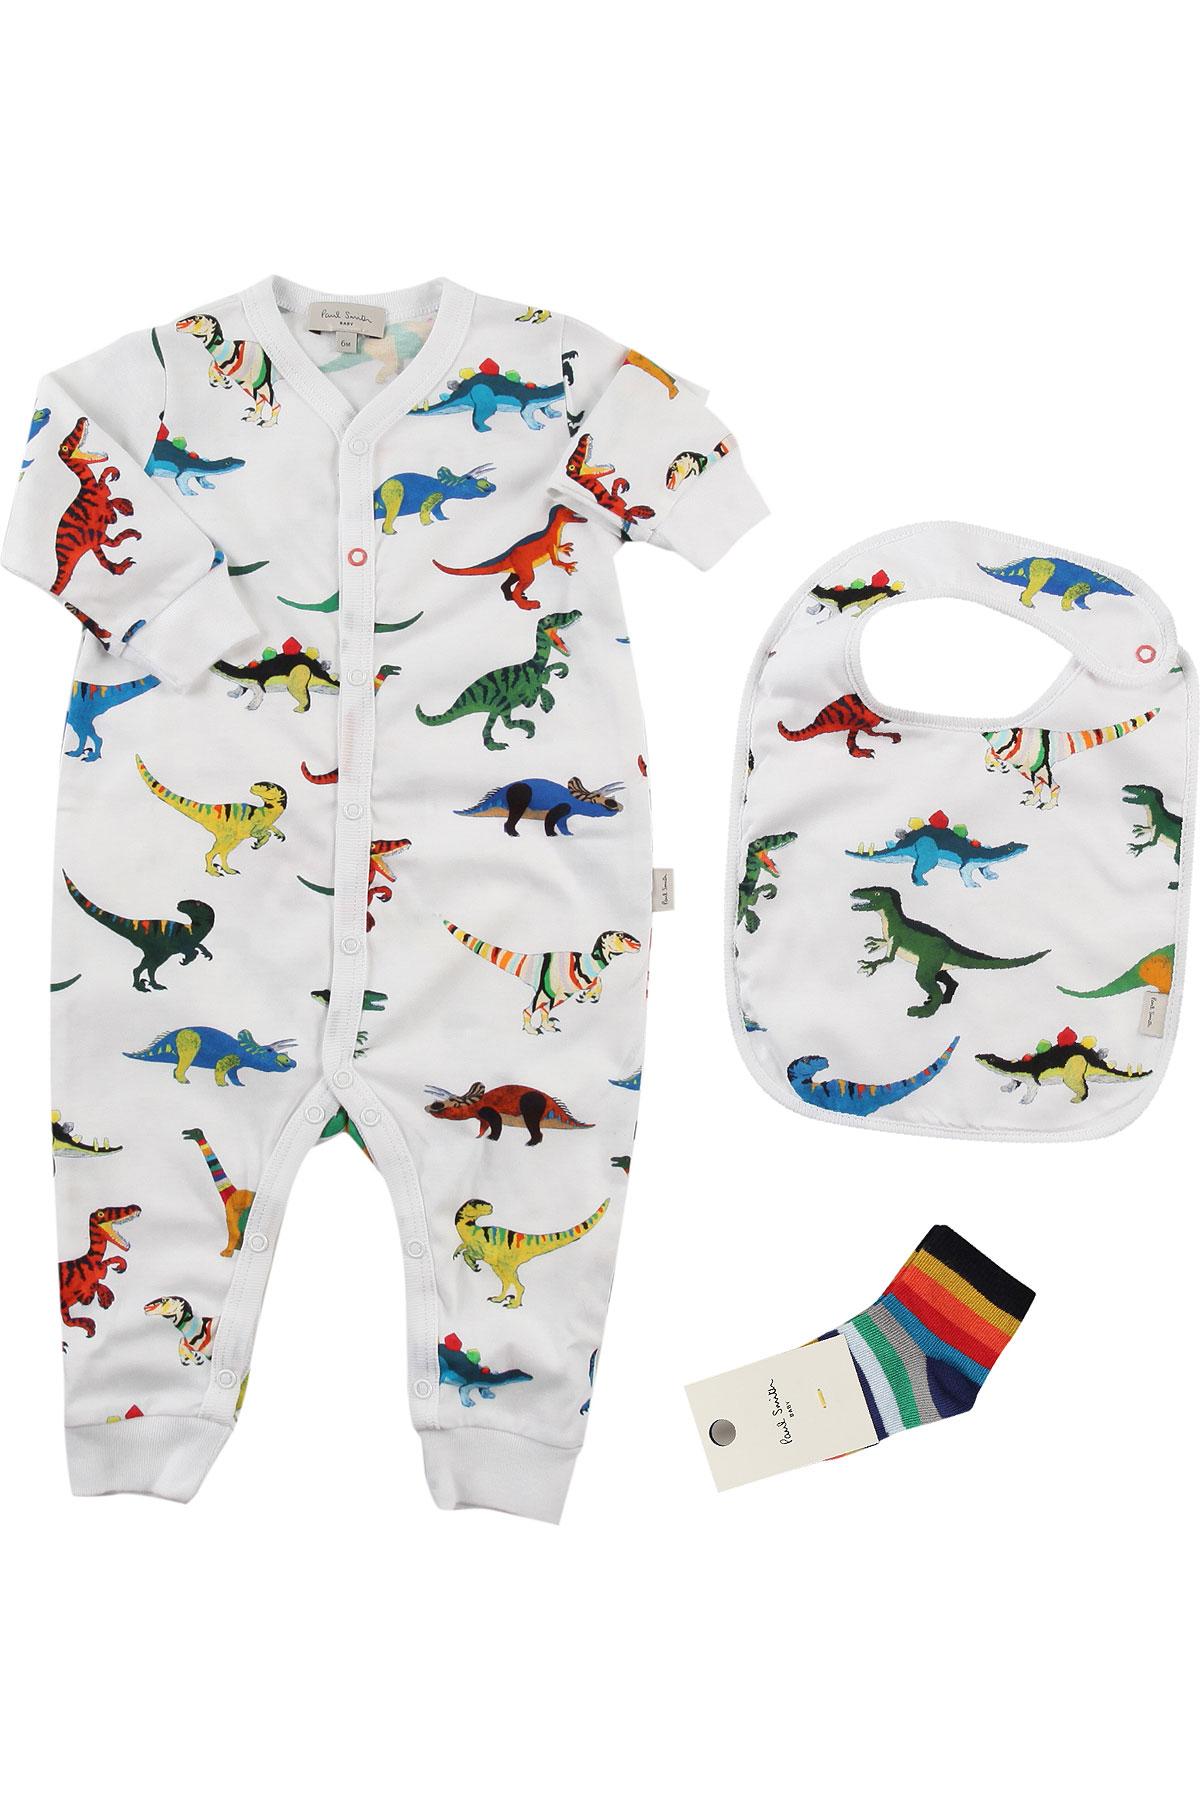 Image of Paul Smith Baby Sets for Boys, White, Cotton, 2017, 3M 6M 9M